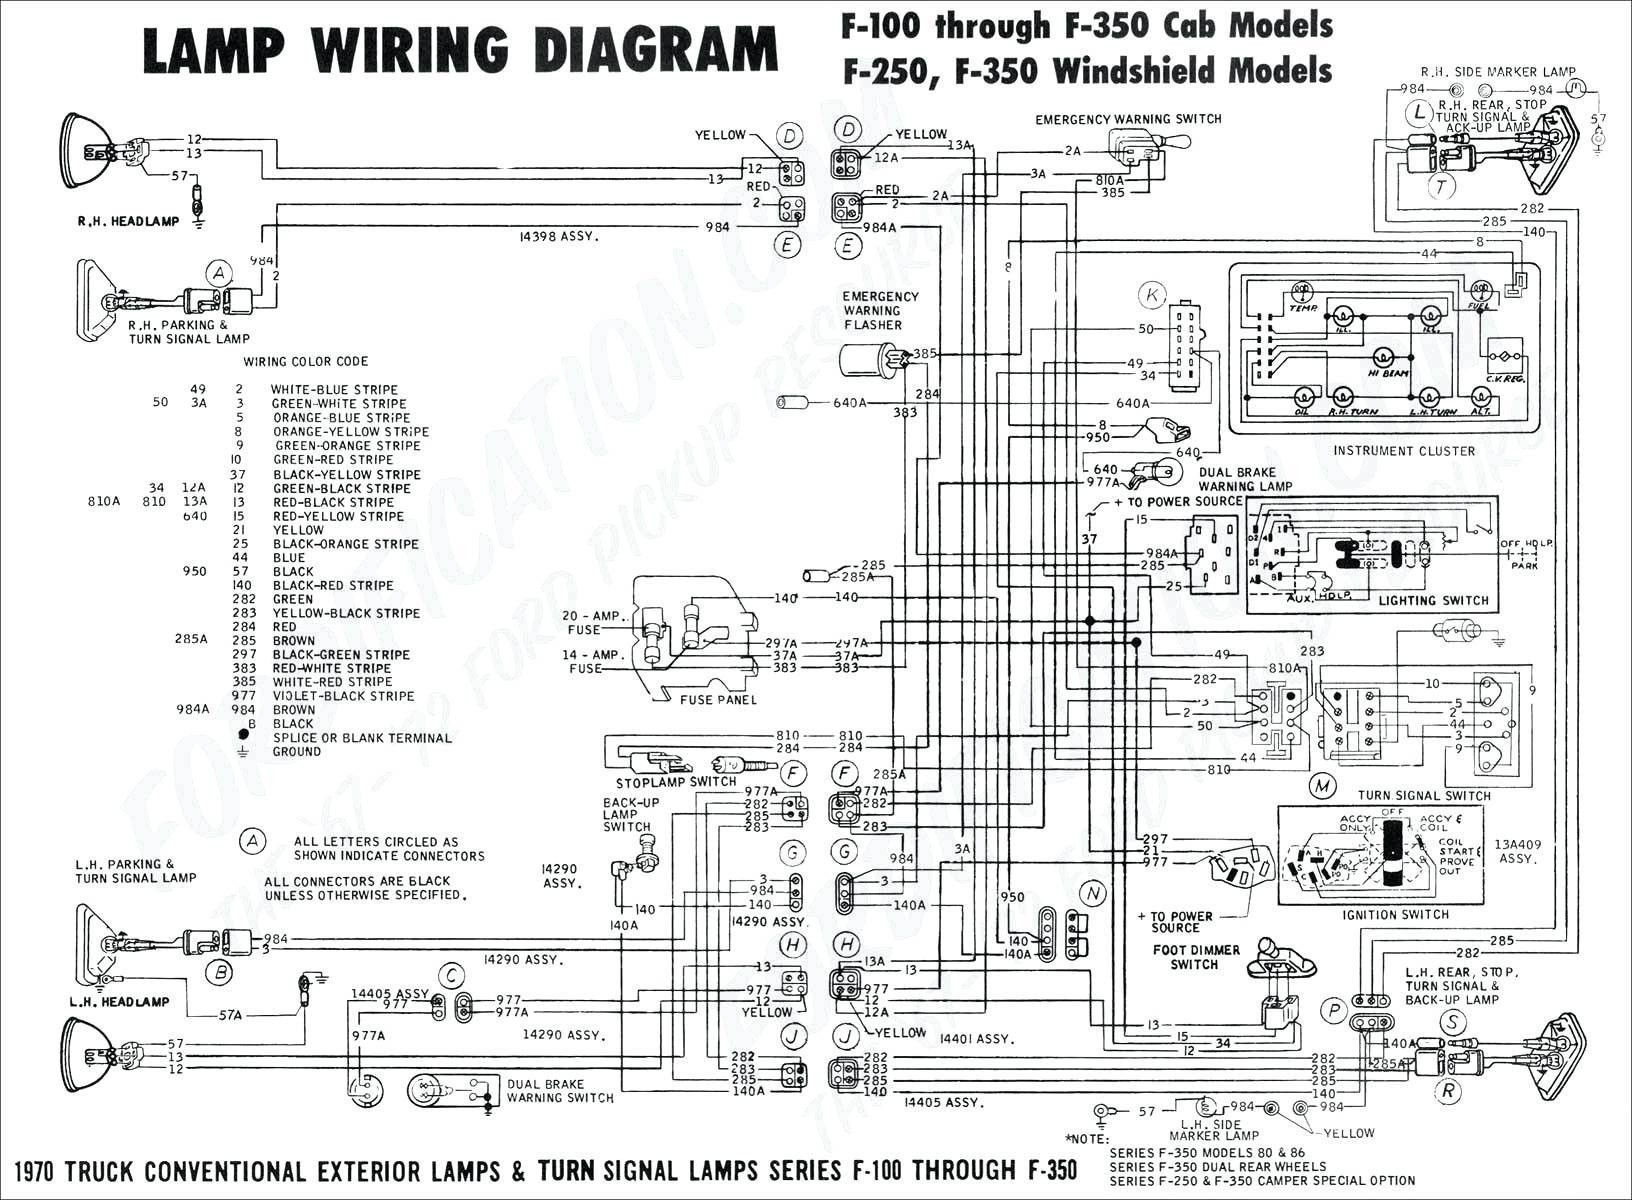 1991 wrangler wiring diagram free download schematic wiringParallel Mod Wiring Free Download Wiring Diagram Schematic #7